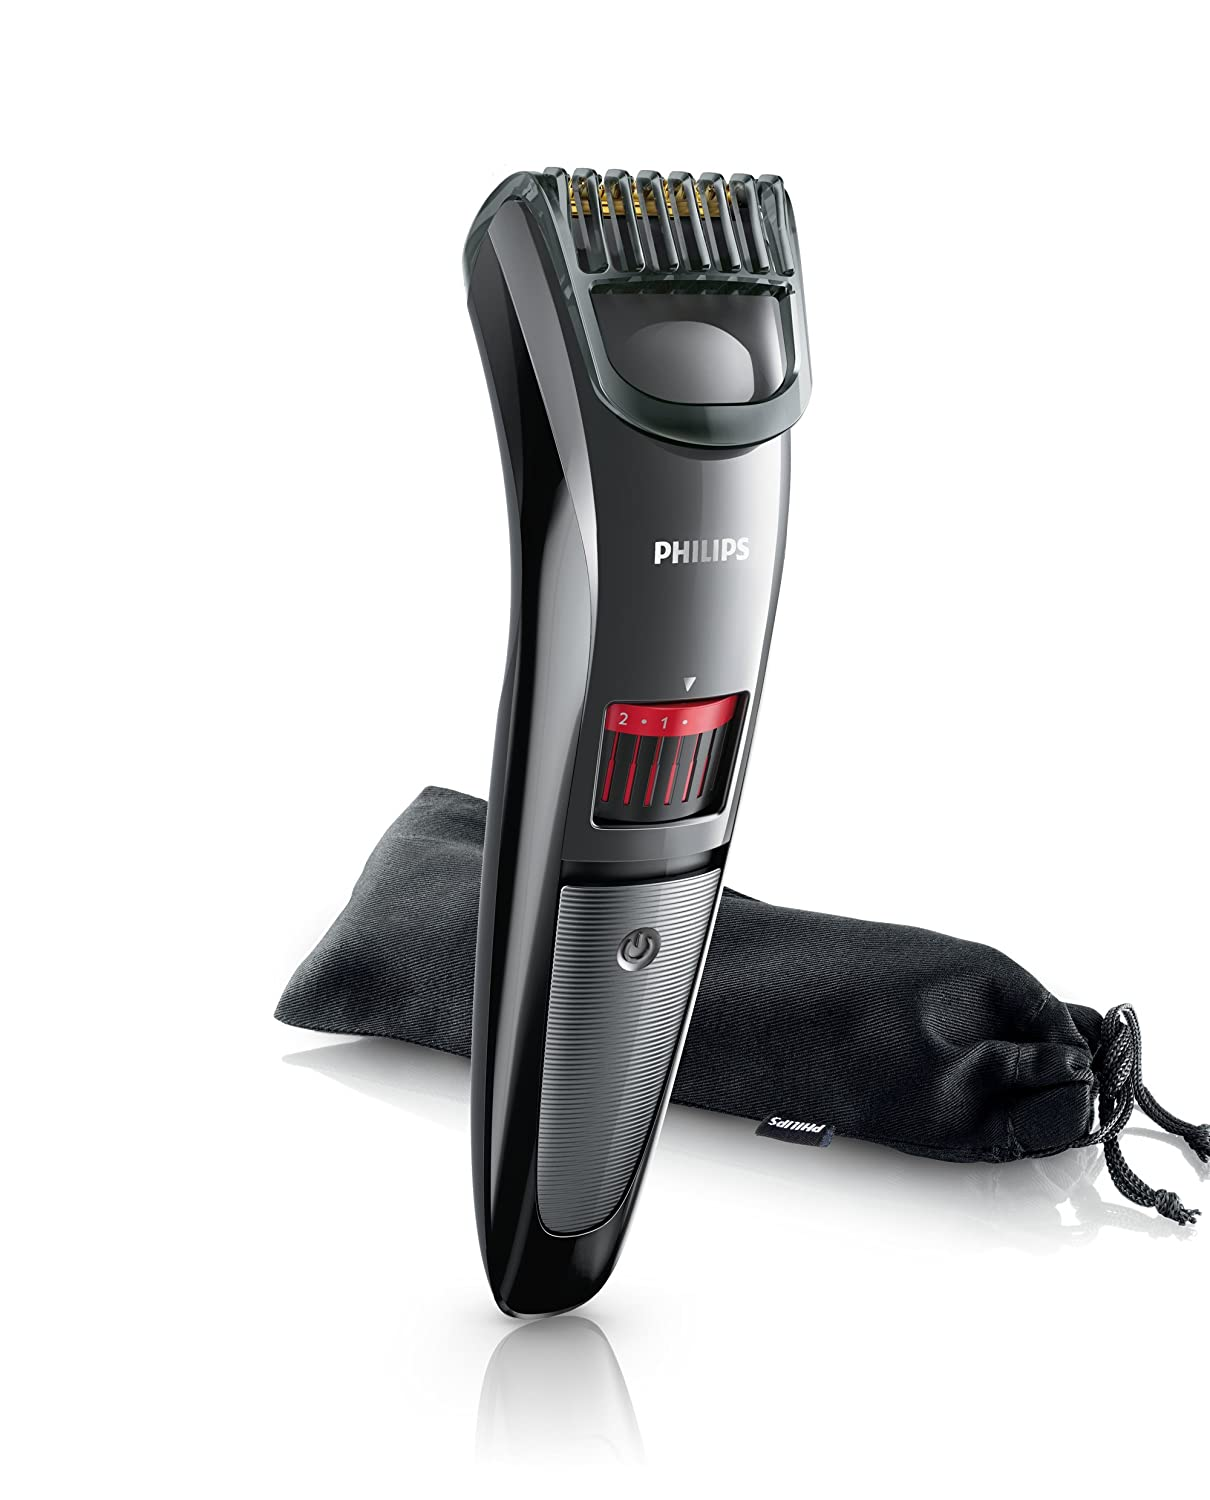 Philips QT4015/23 Stubble Trimmer review